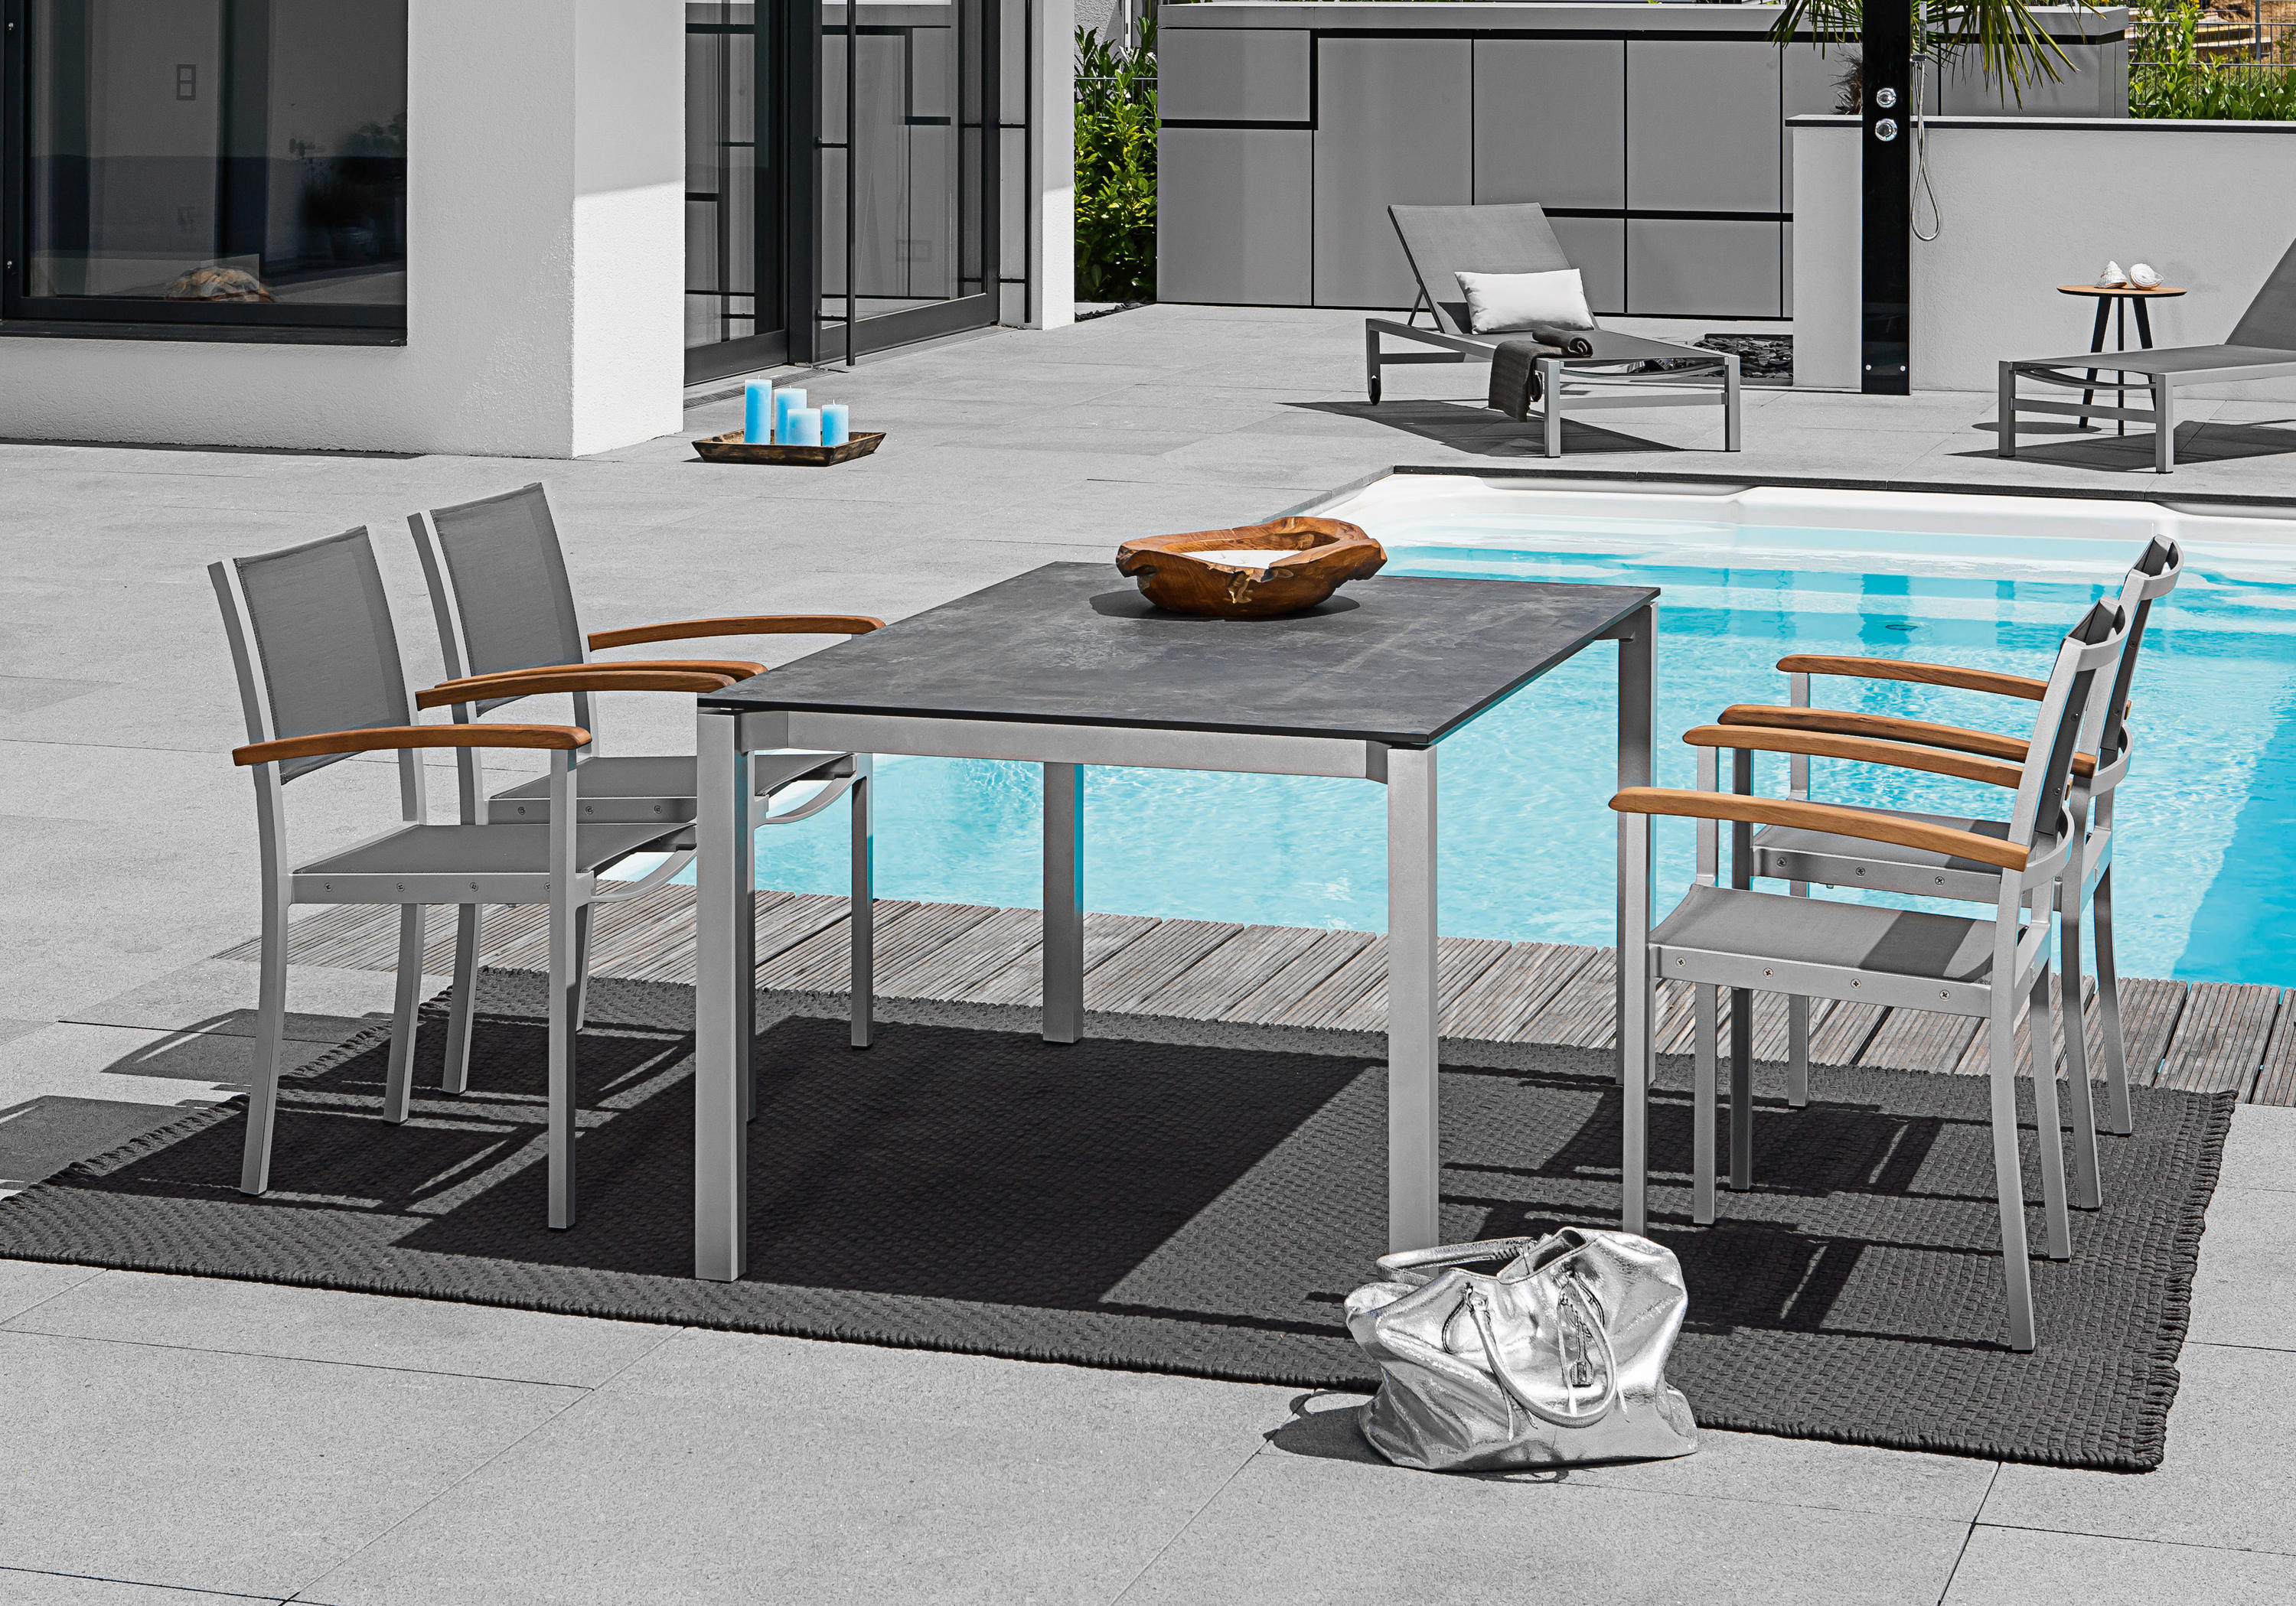 FORUM SUNBED - Sun loungers from Fischer Möbel | Architonic